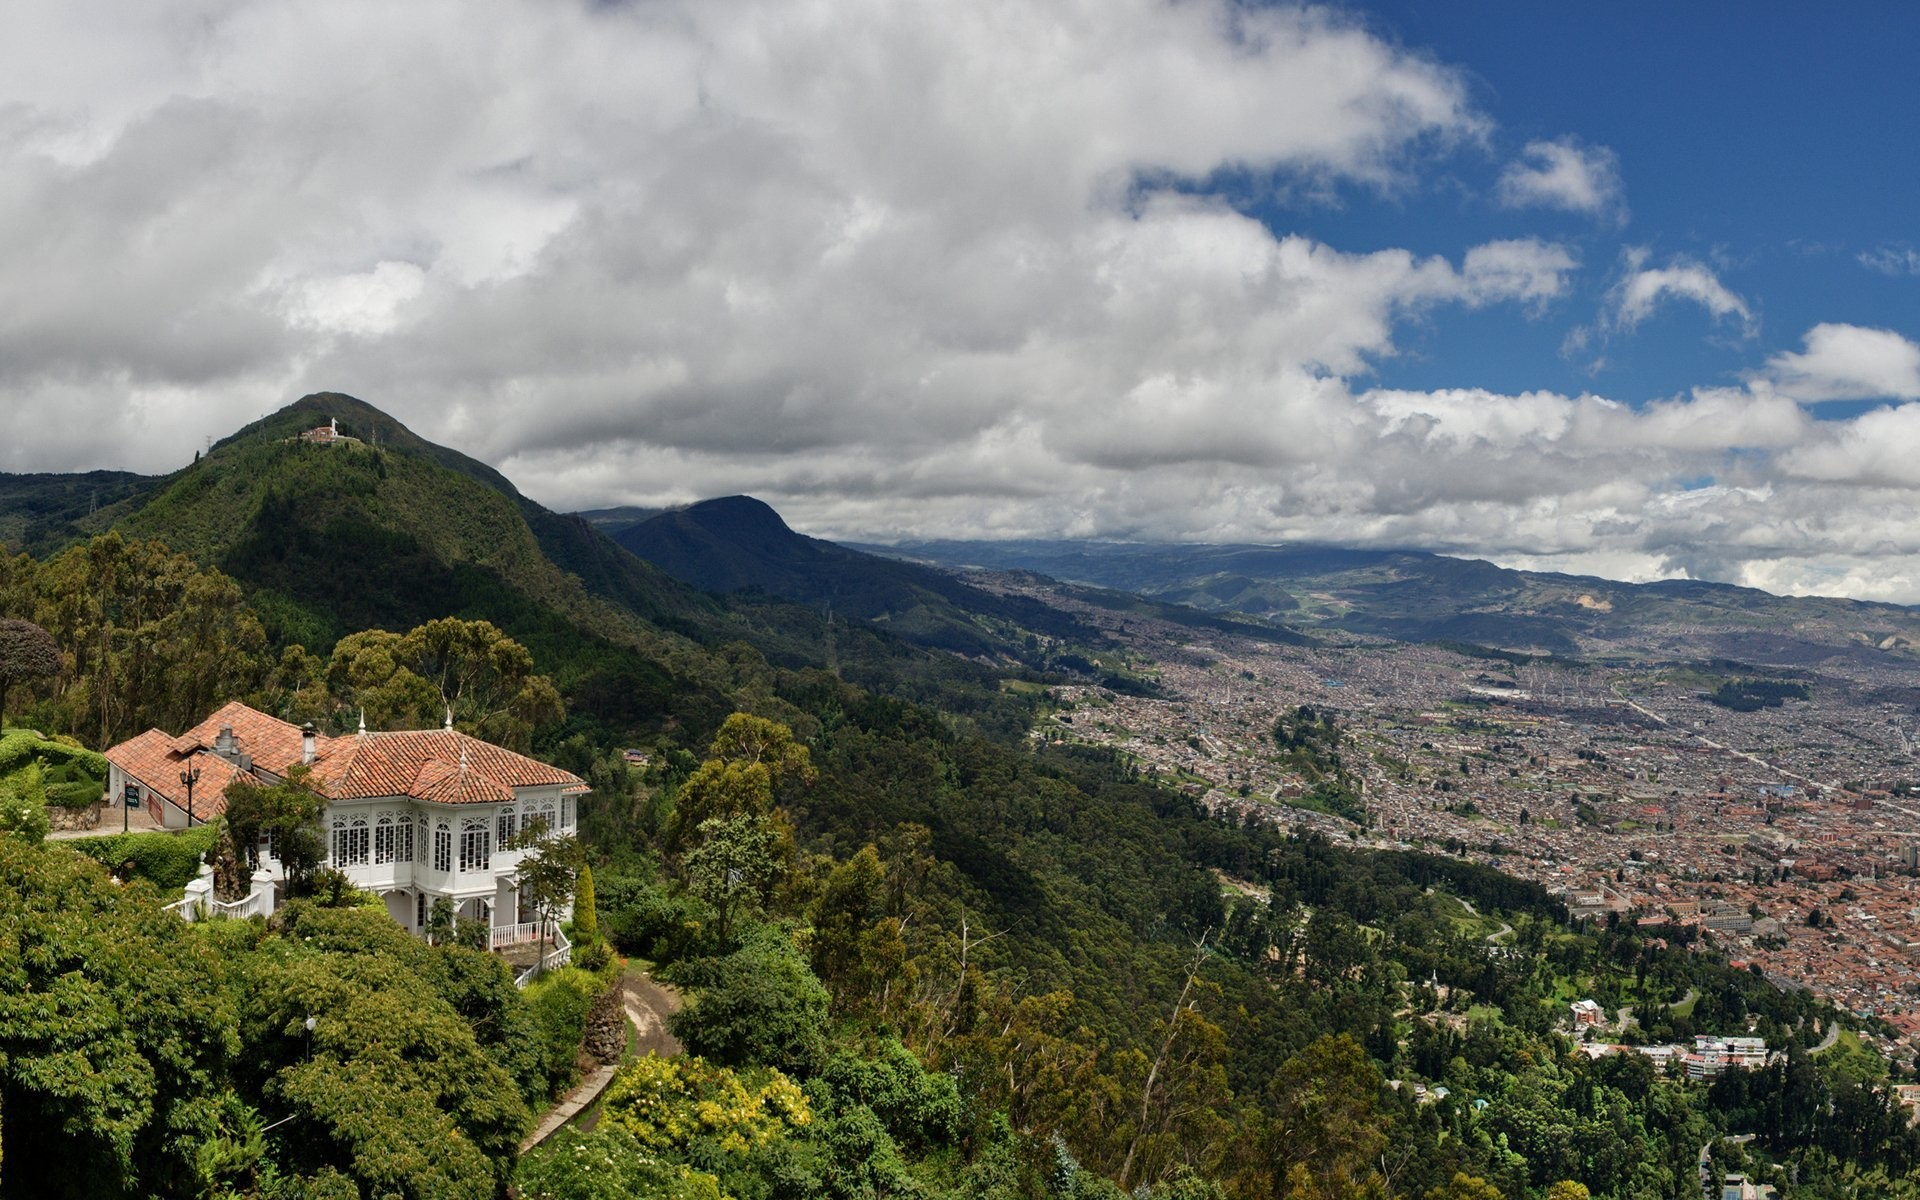 Res: 1920x1200, bogota colombia sky clouds mountain town valley house villa